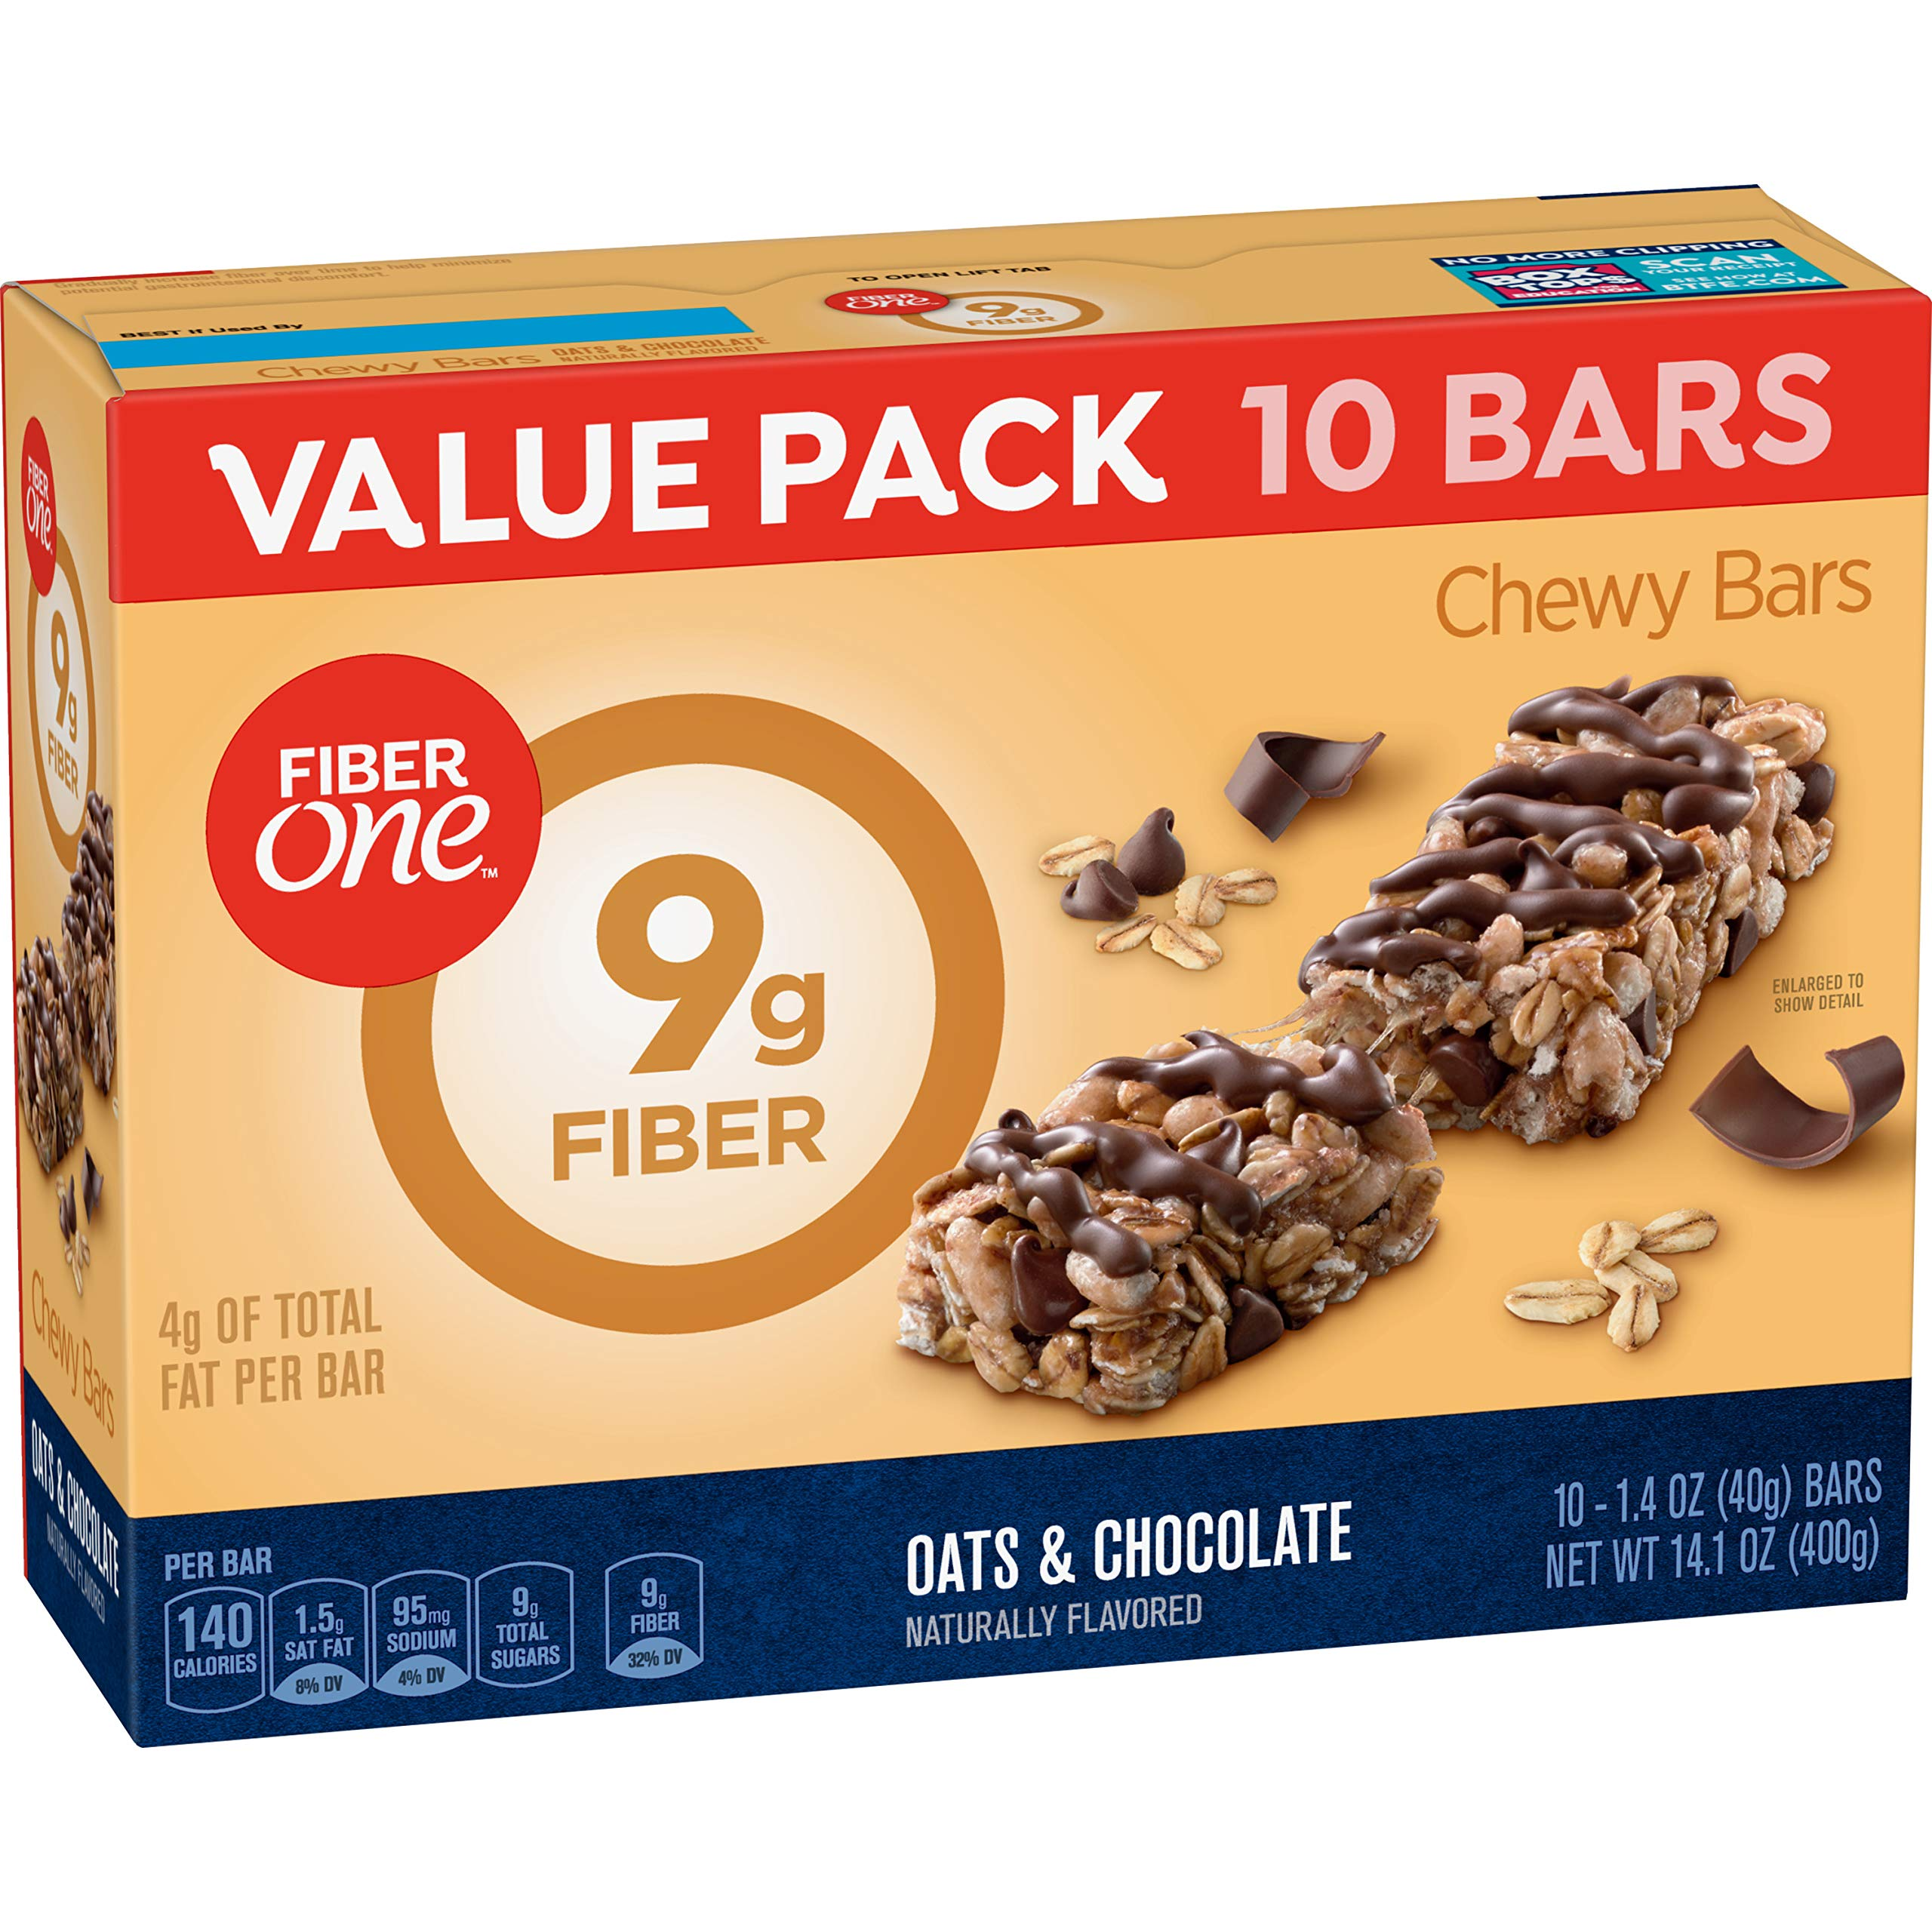 Fiber 1 Oats and Chocolate Bar Value Pack, 1.4 oz, 10 Count